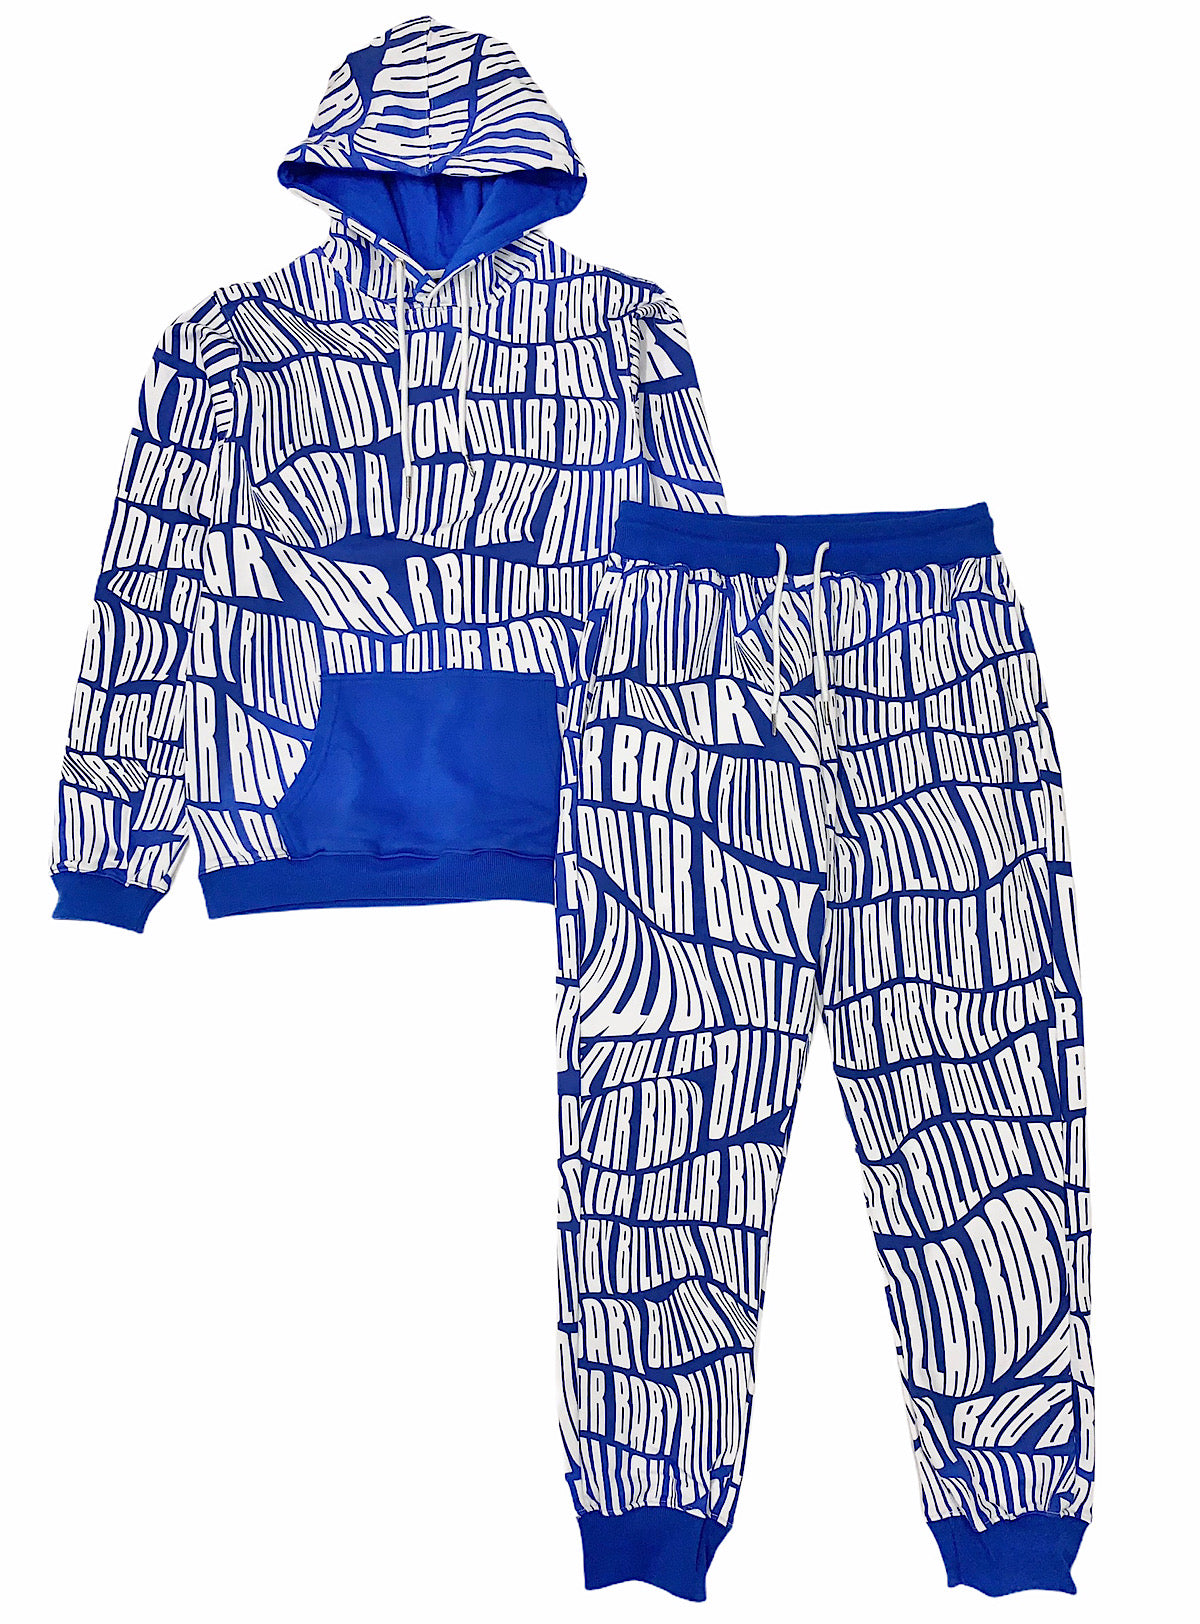 Billion Dolla Baby Sweatsuit - AOP Print - Blue